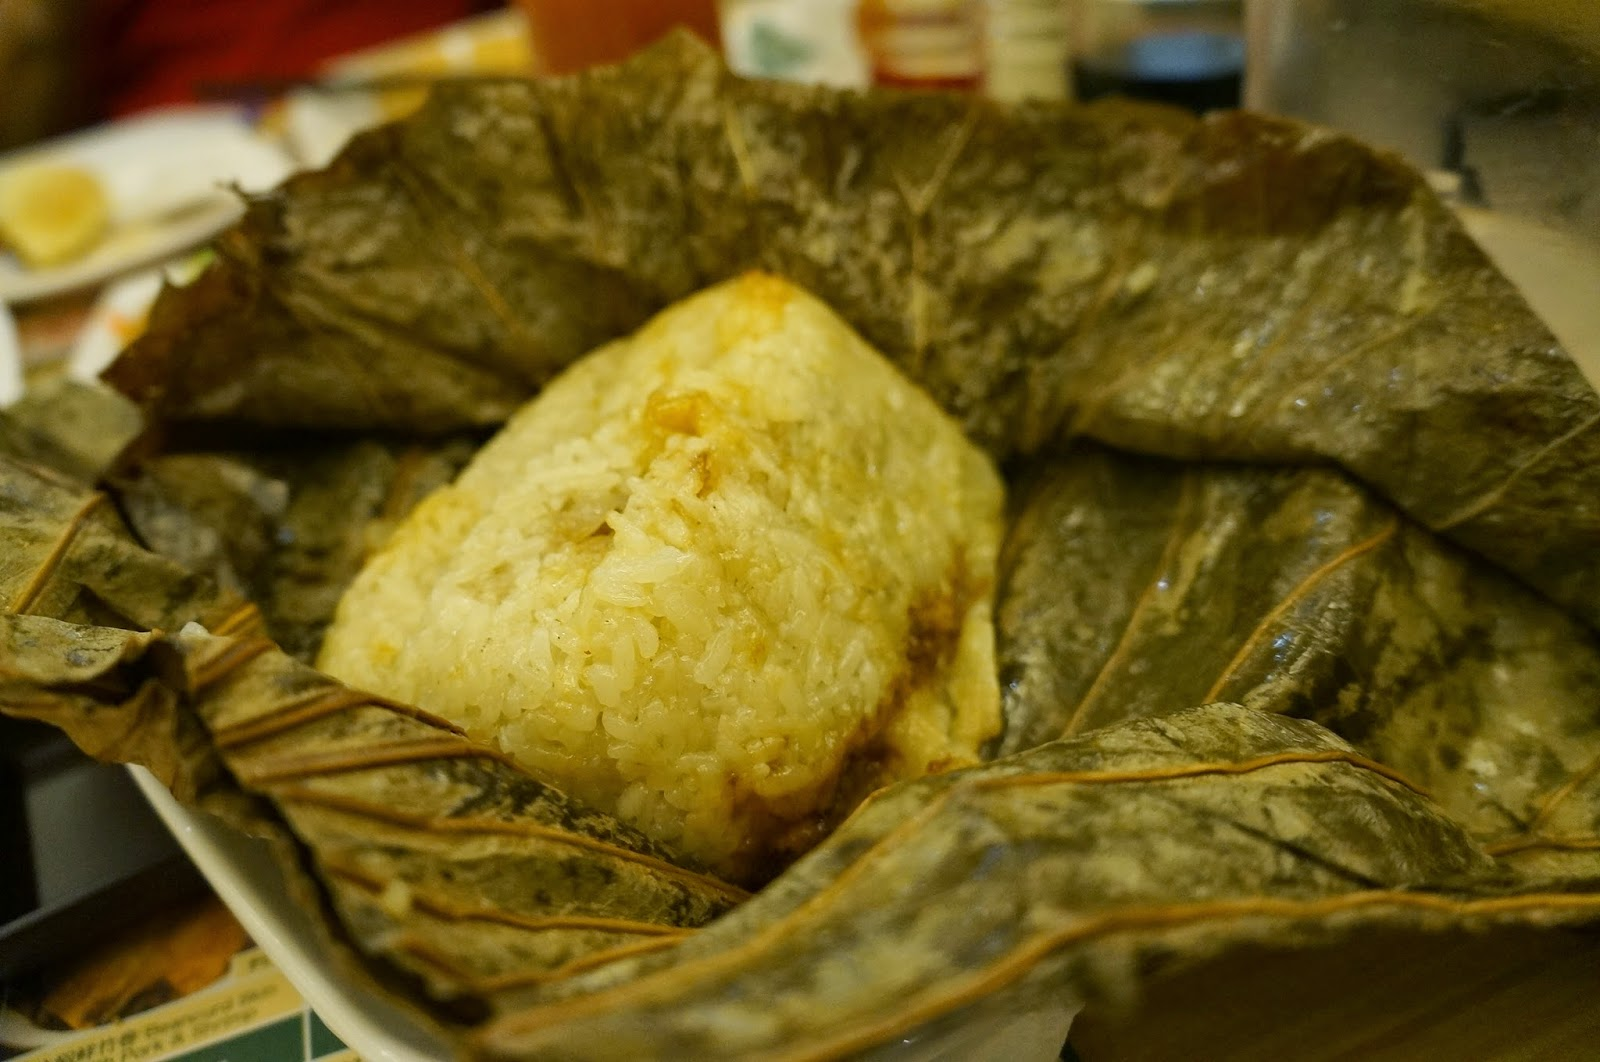 Glutinous Rice with Lotus Leaf unwrapped